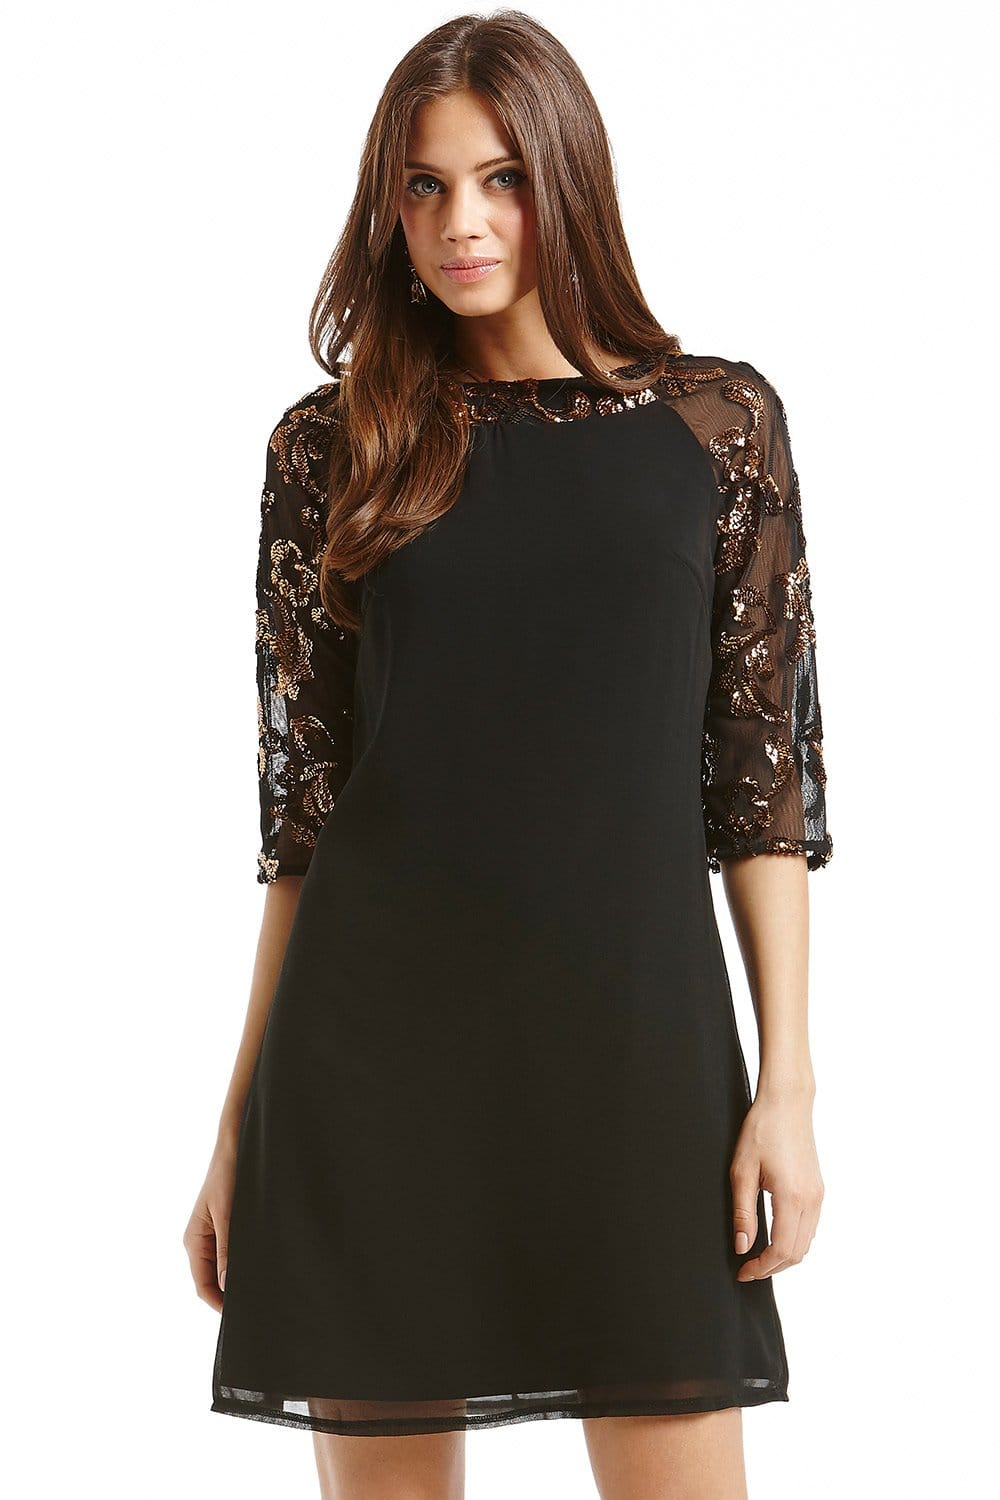 Black and Metallic Sequin Tunic Dress - from Little Mistress UK